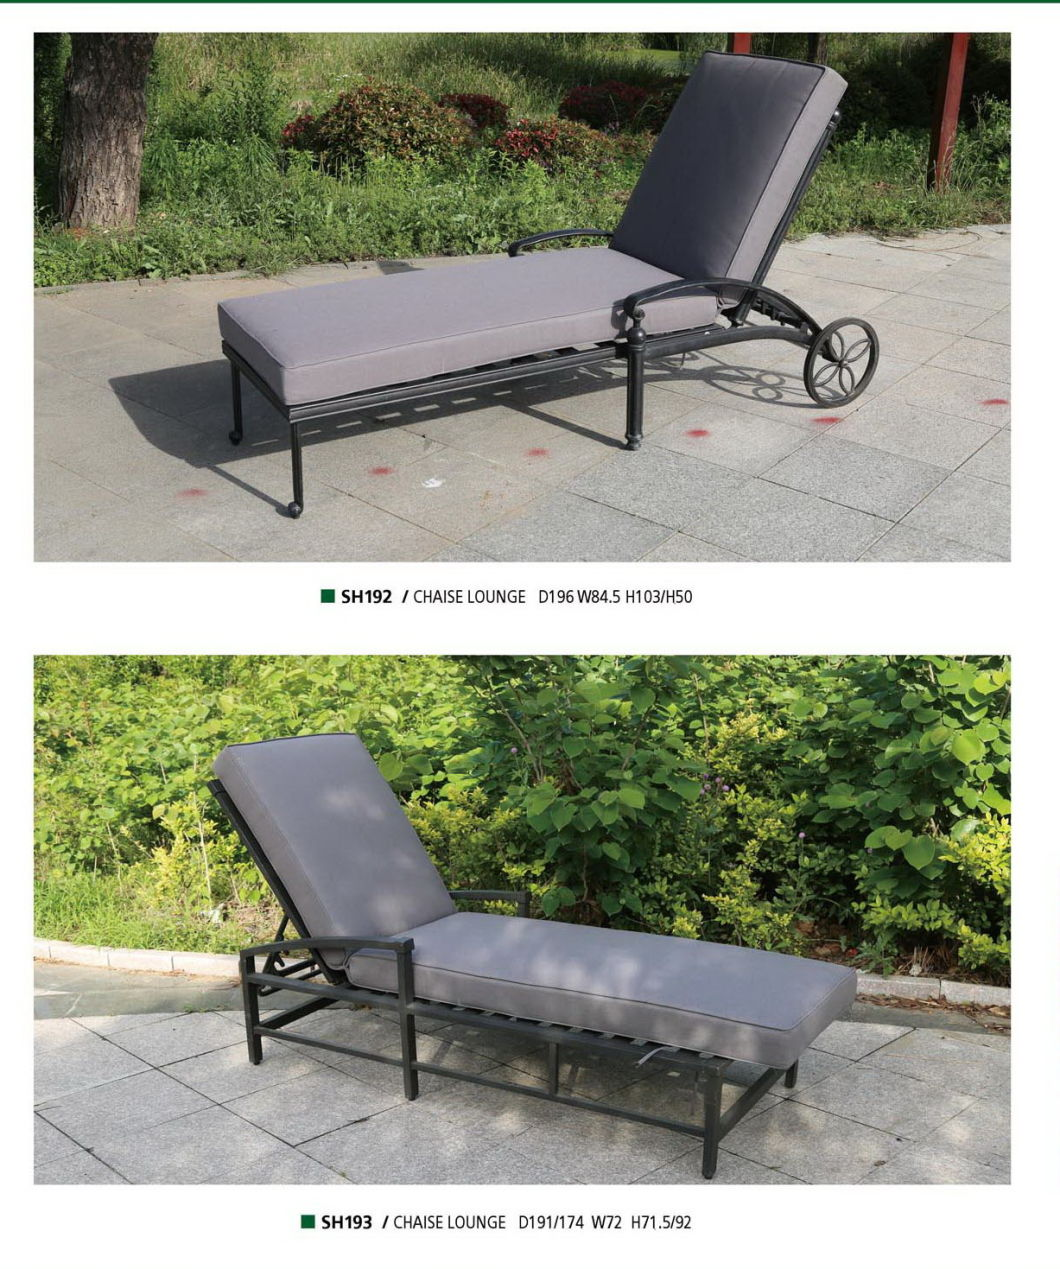 - American Style Outdoor Chaise Lounge Backyard Lounge Garden Chaise